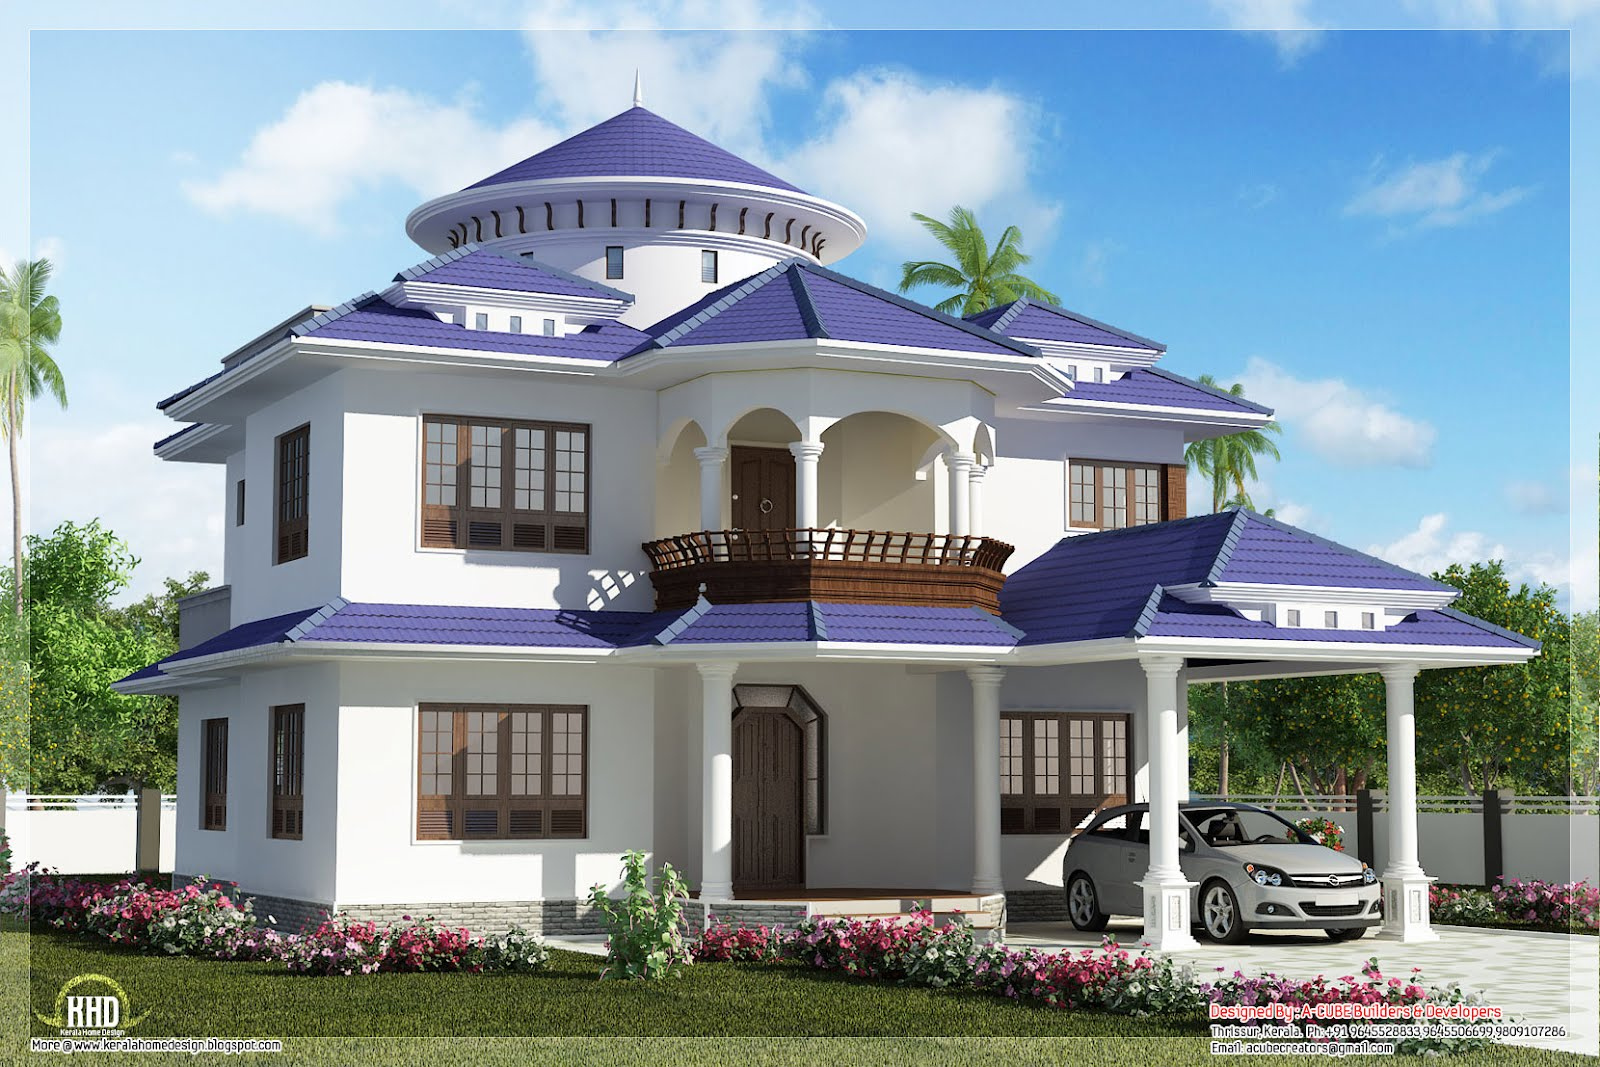 Beautiful dream home design in 2800 sq.feet